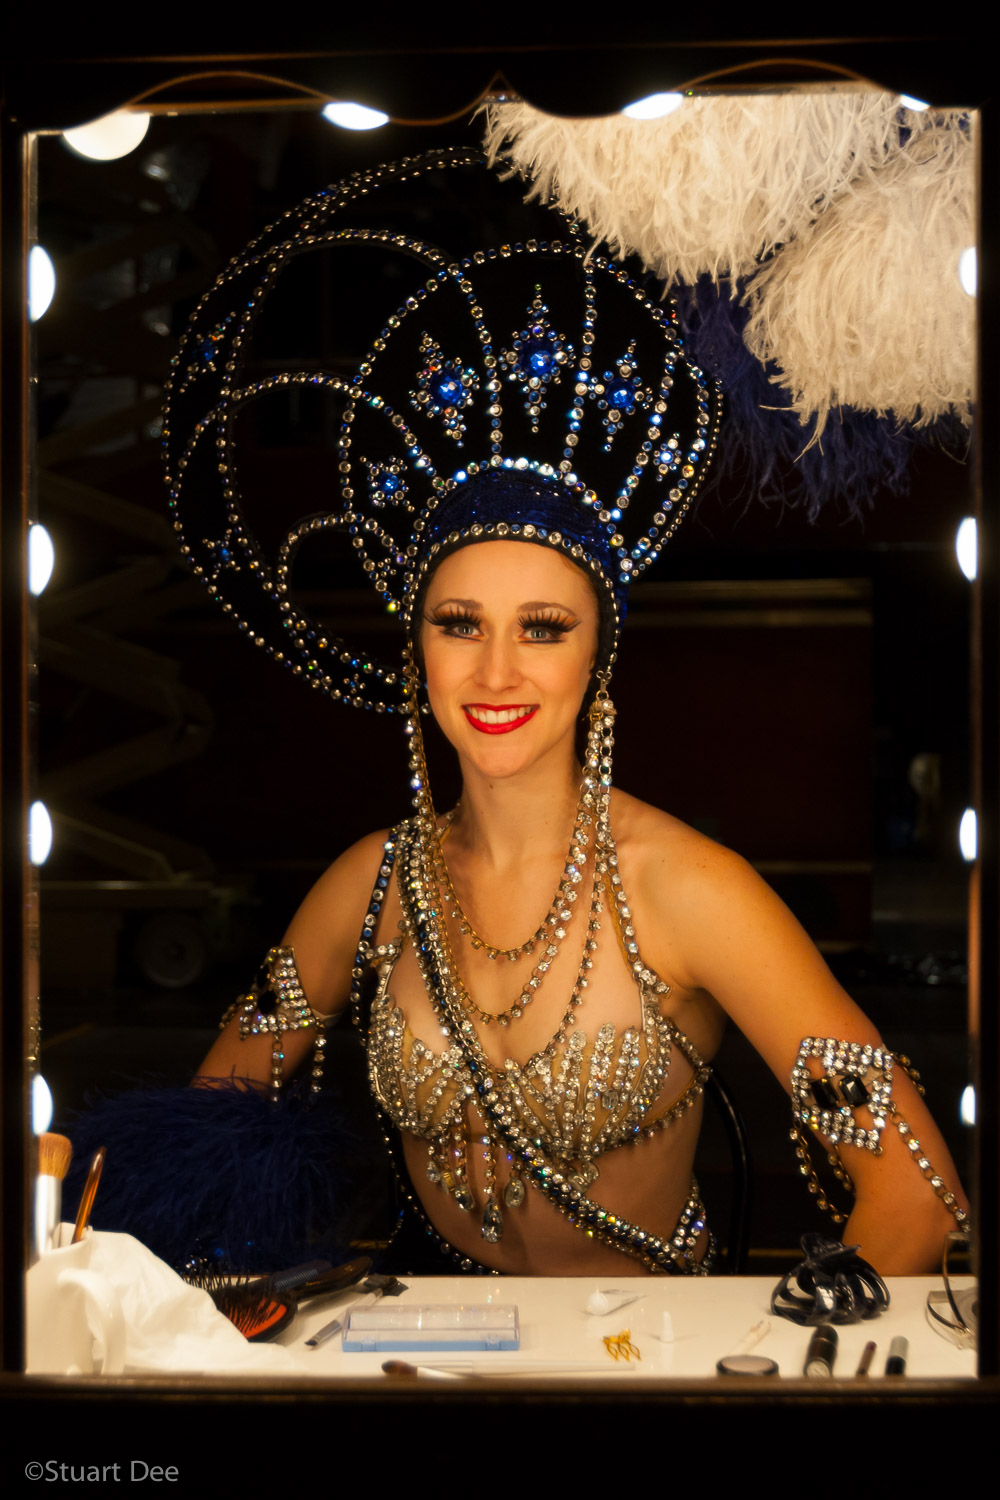 Showgirl at dressing room mirror, Las Vegas, Nevada, USA